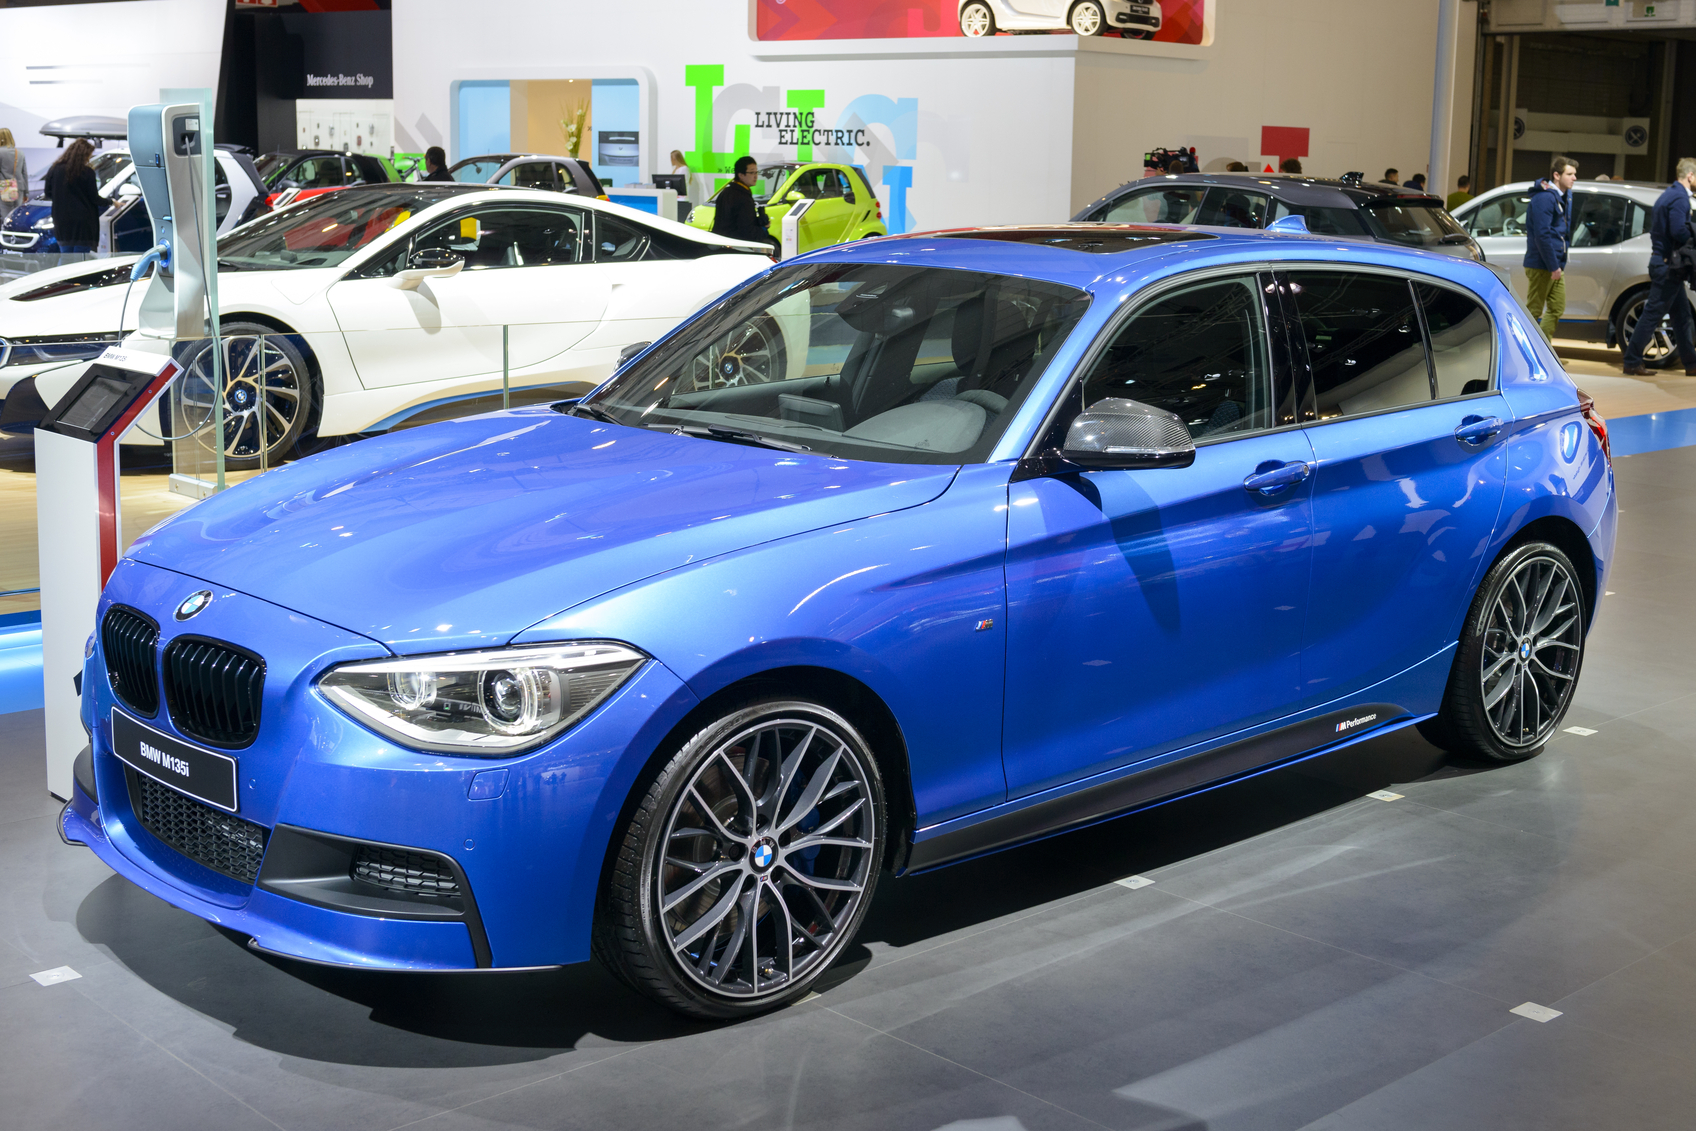 Brussels, Belgium - January 14, 2014: BMW 1-series M135i compact hatchback car on display at the 2014 Brussels motor show. People in the background are looking at the cars.